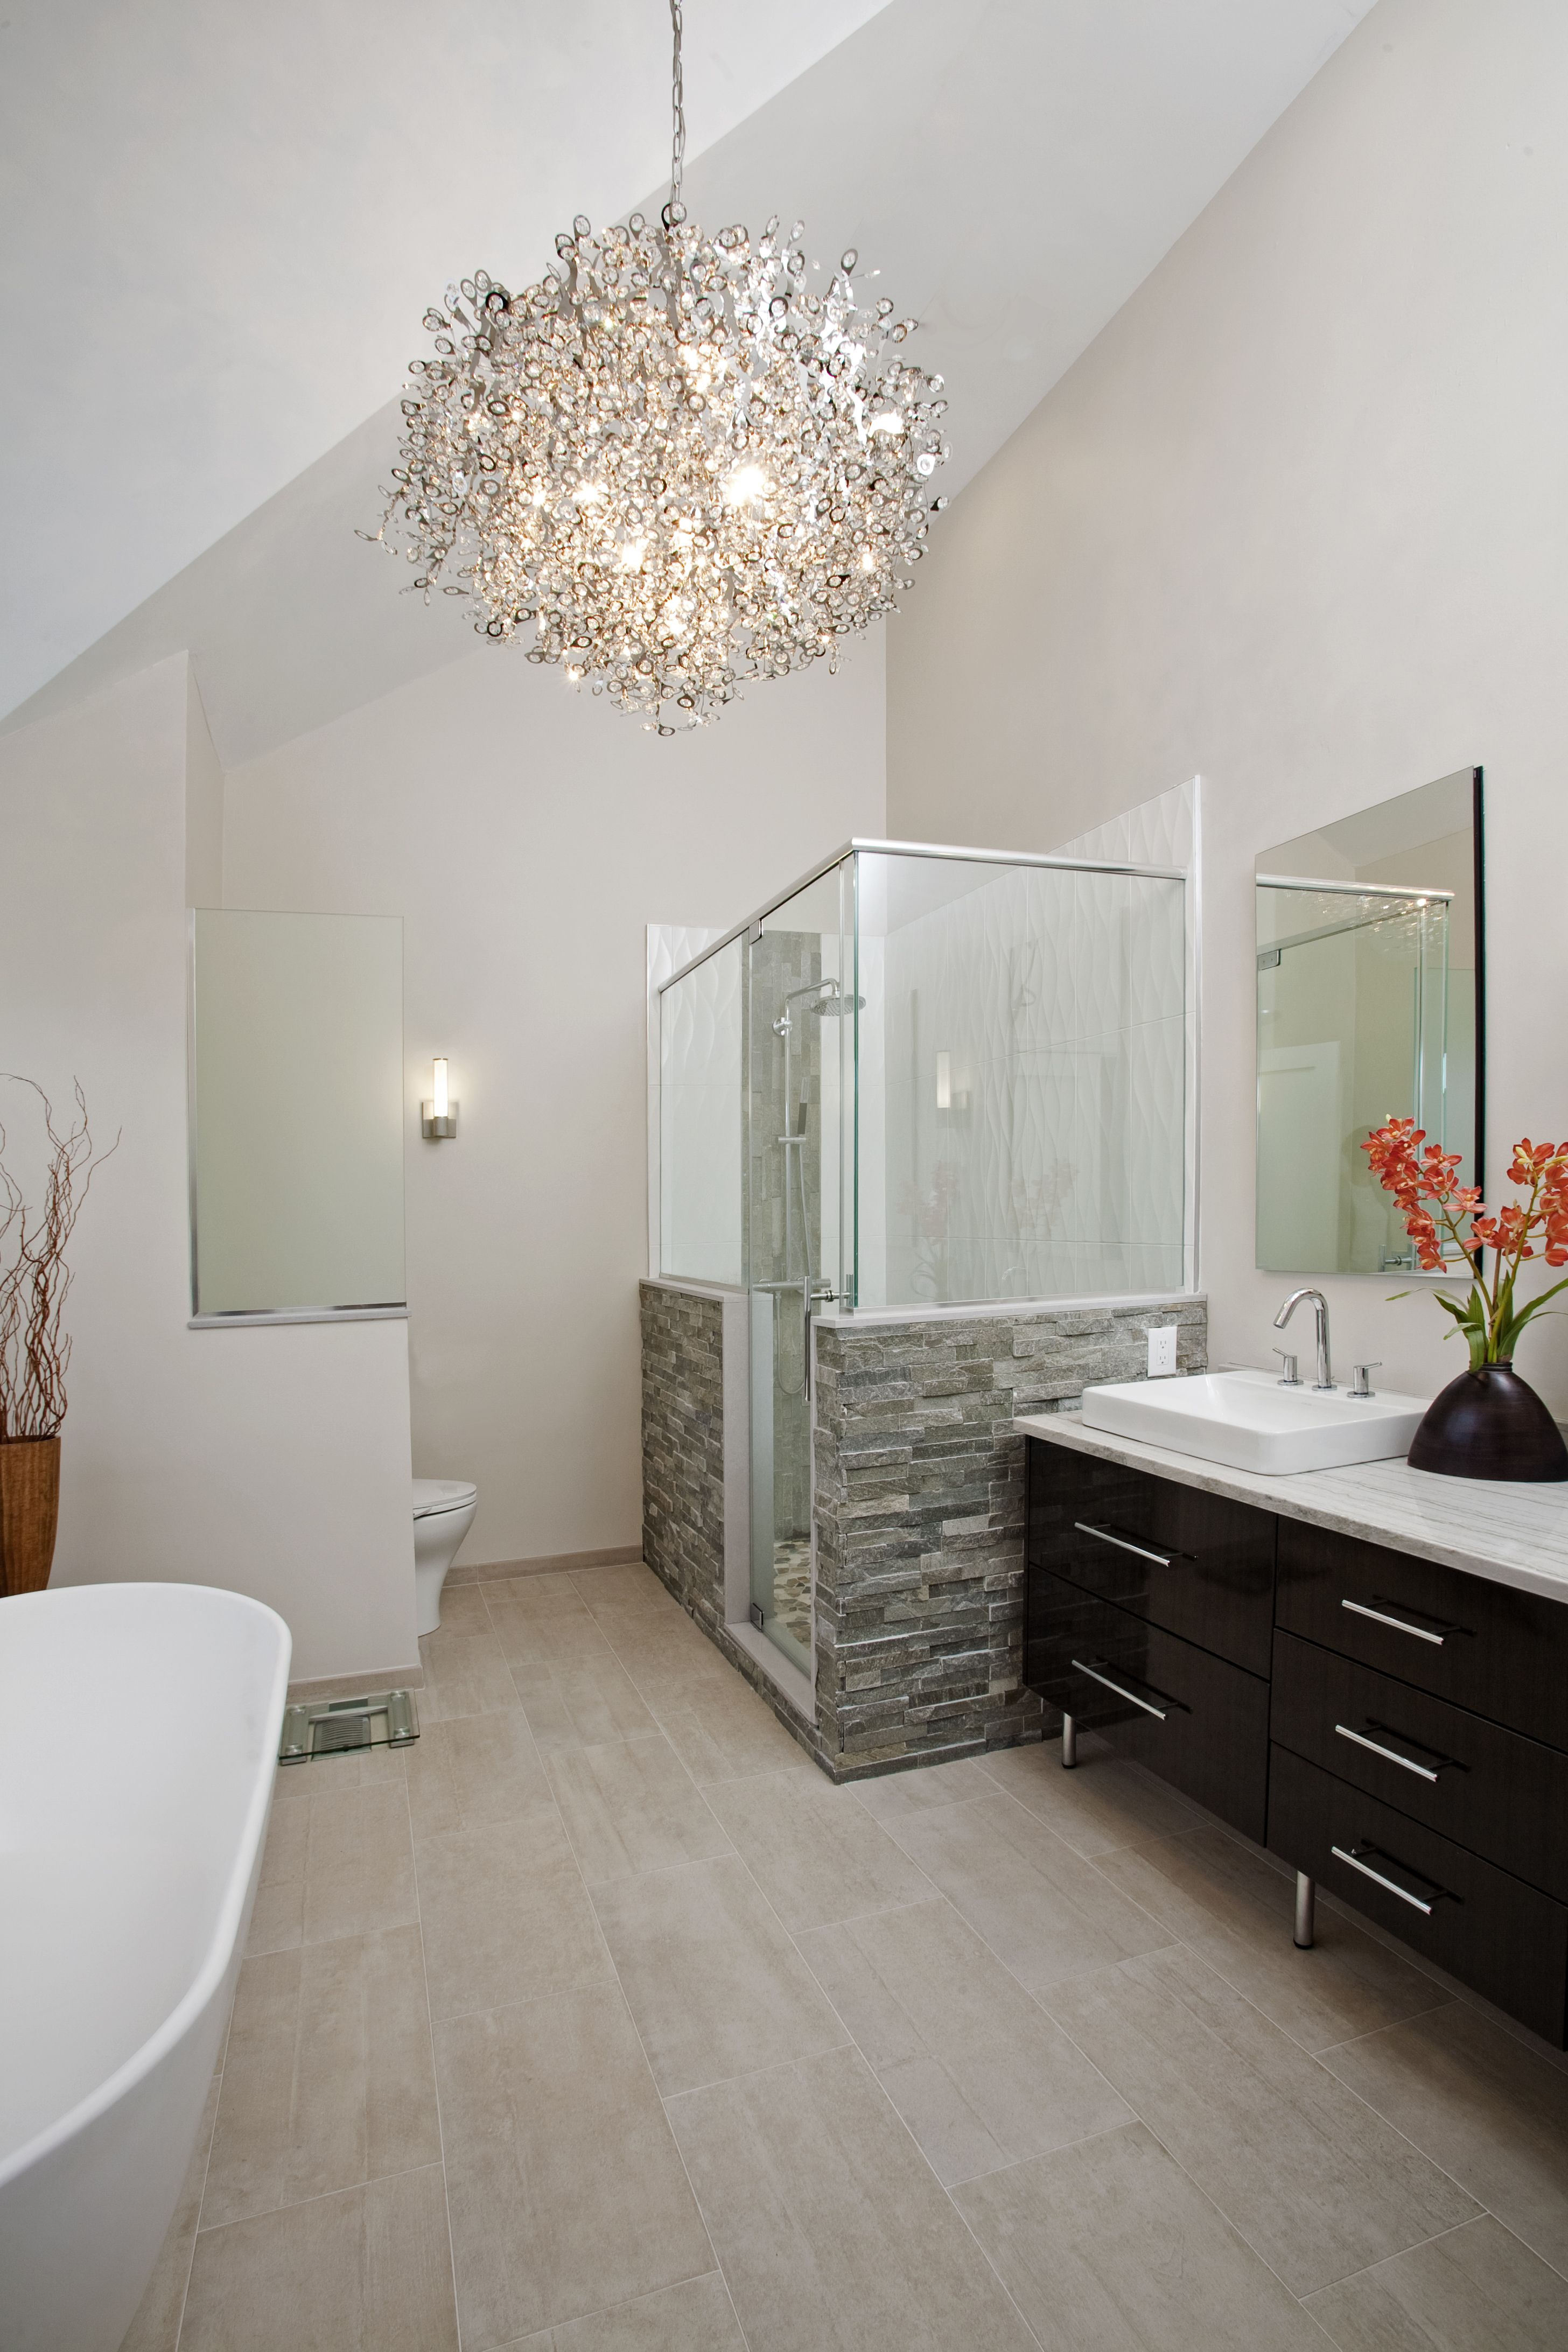 The Vaulted Ceiling And Contemporary Chandelier Really Make A - Contemporary bathrooms vaulted ceiling